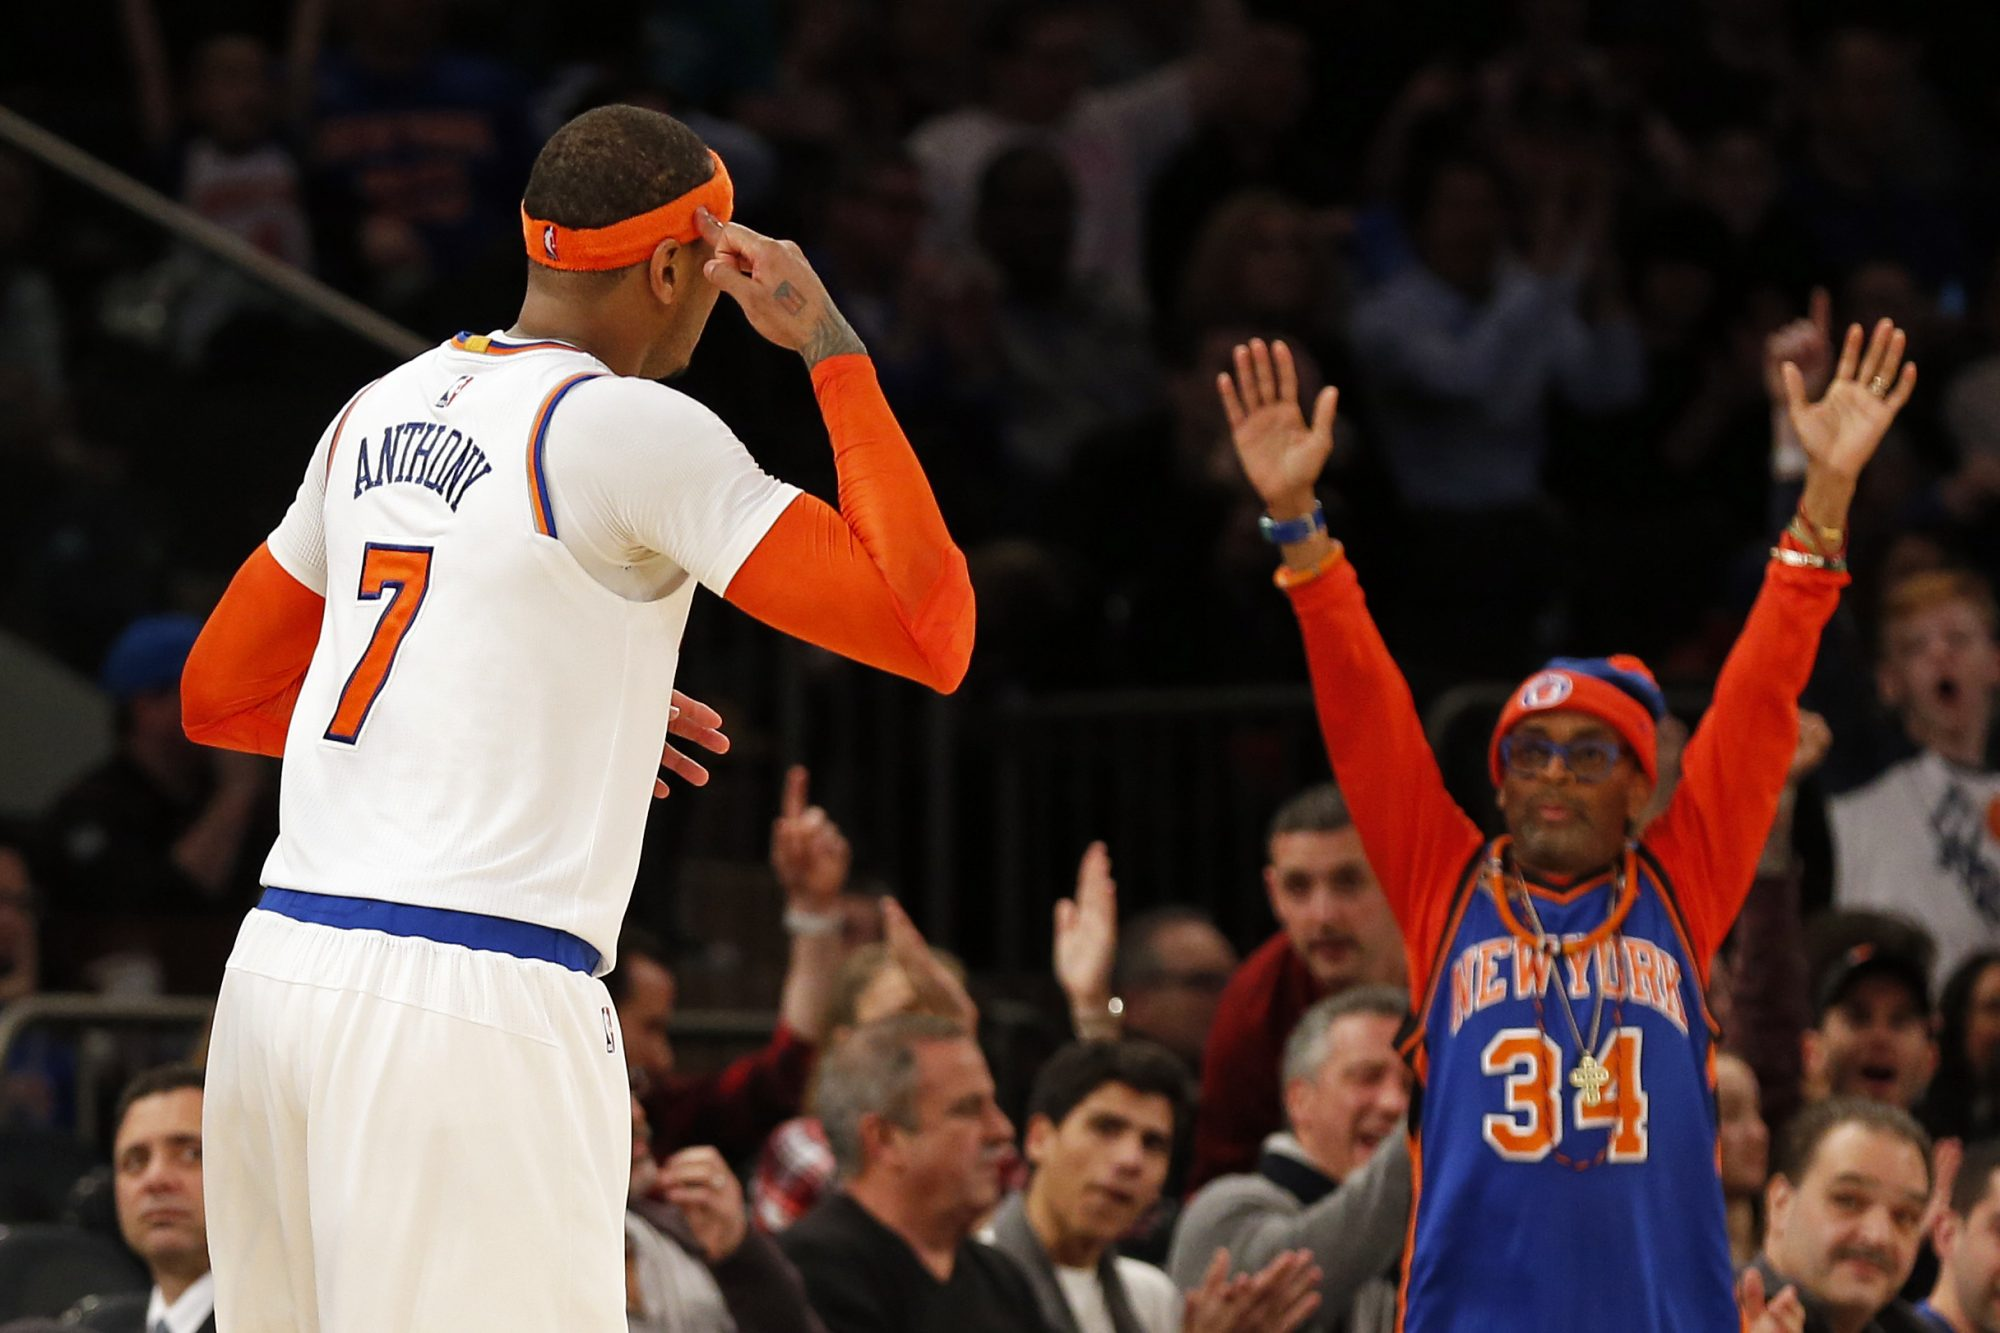 New York Knicks are the most valuable franchise in the NBA